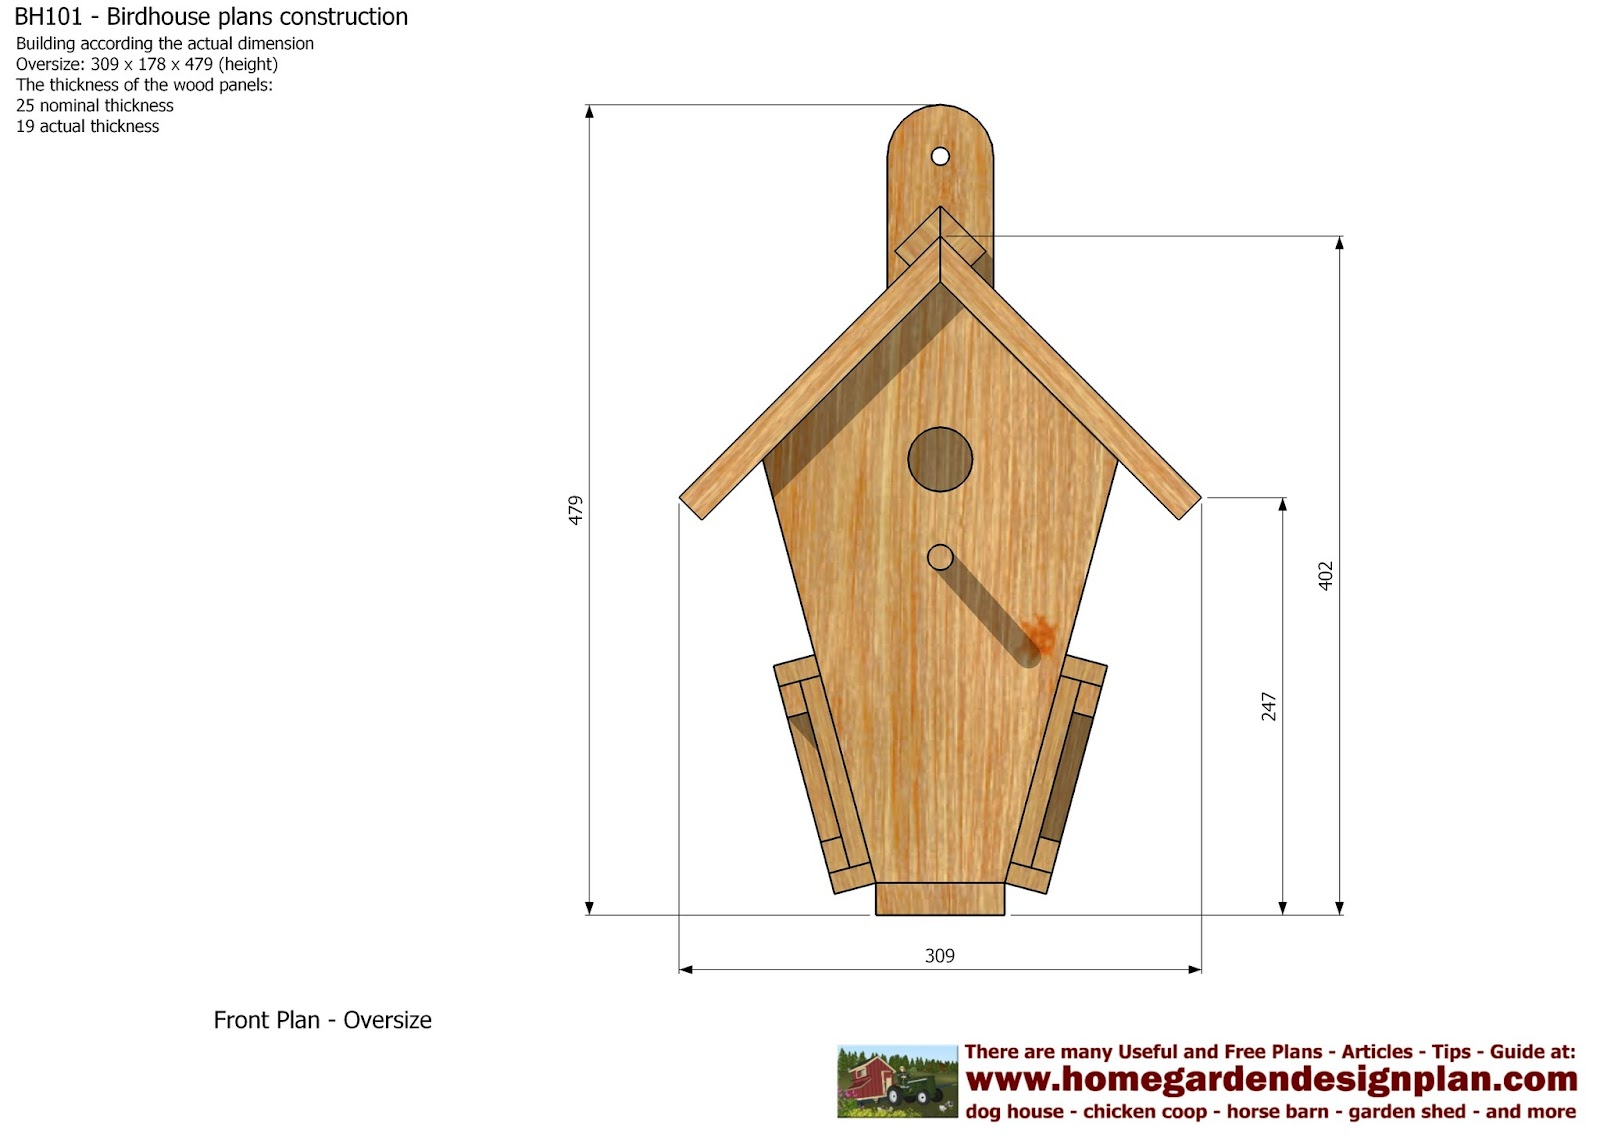 home garden plans: BH101 - Bird House Plans Construction - Bird ...